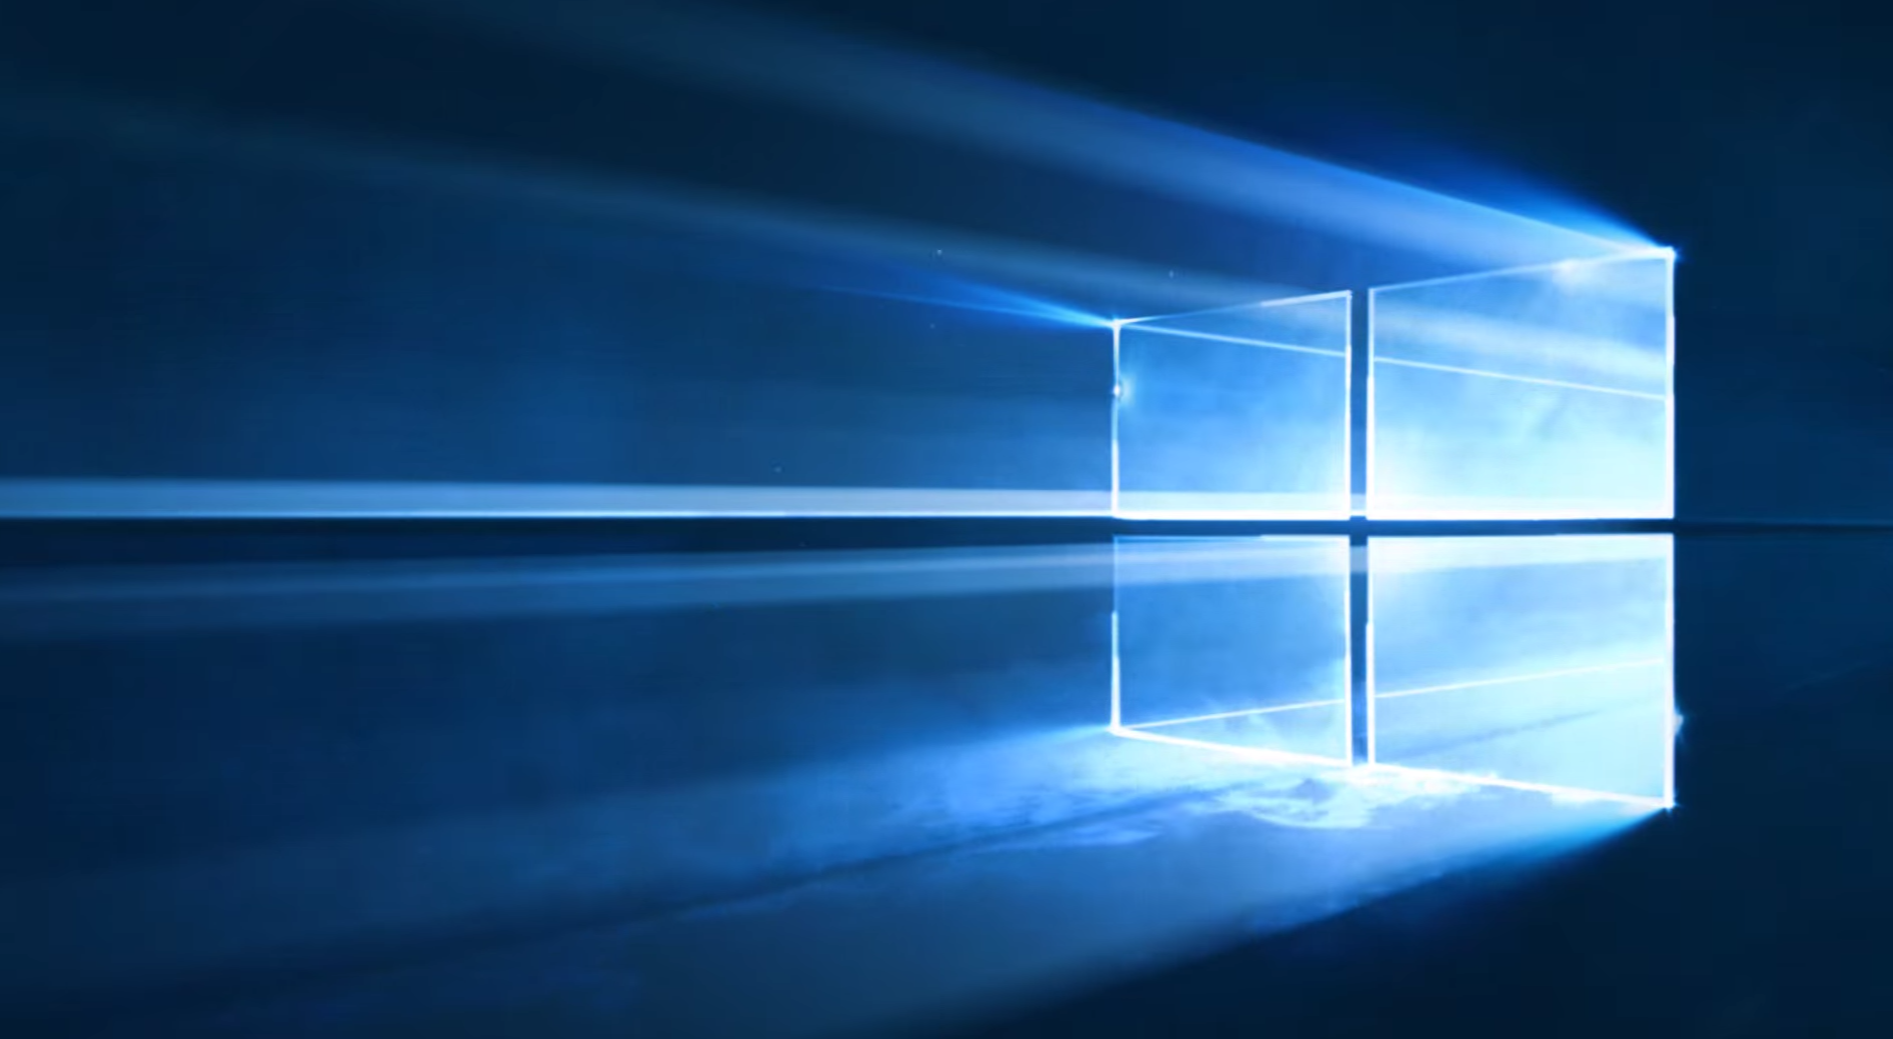 Windows 10 review: It's familiar, it's powerful, but the Edge ...